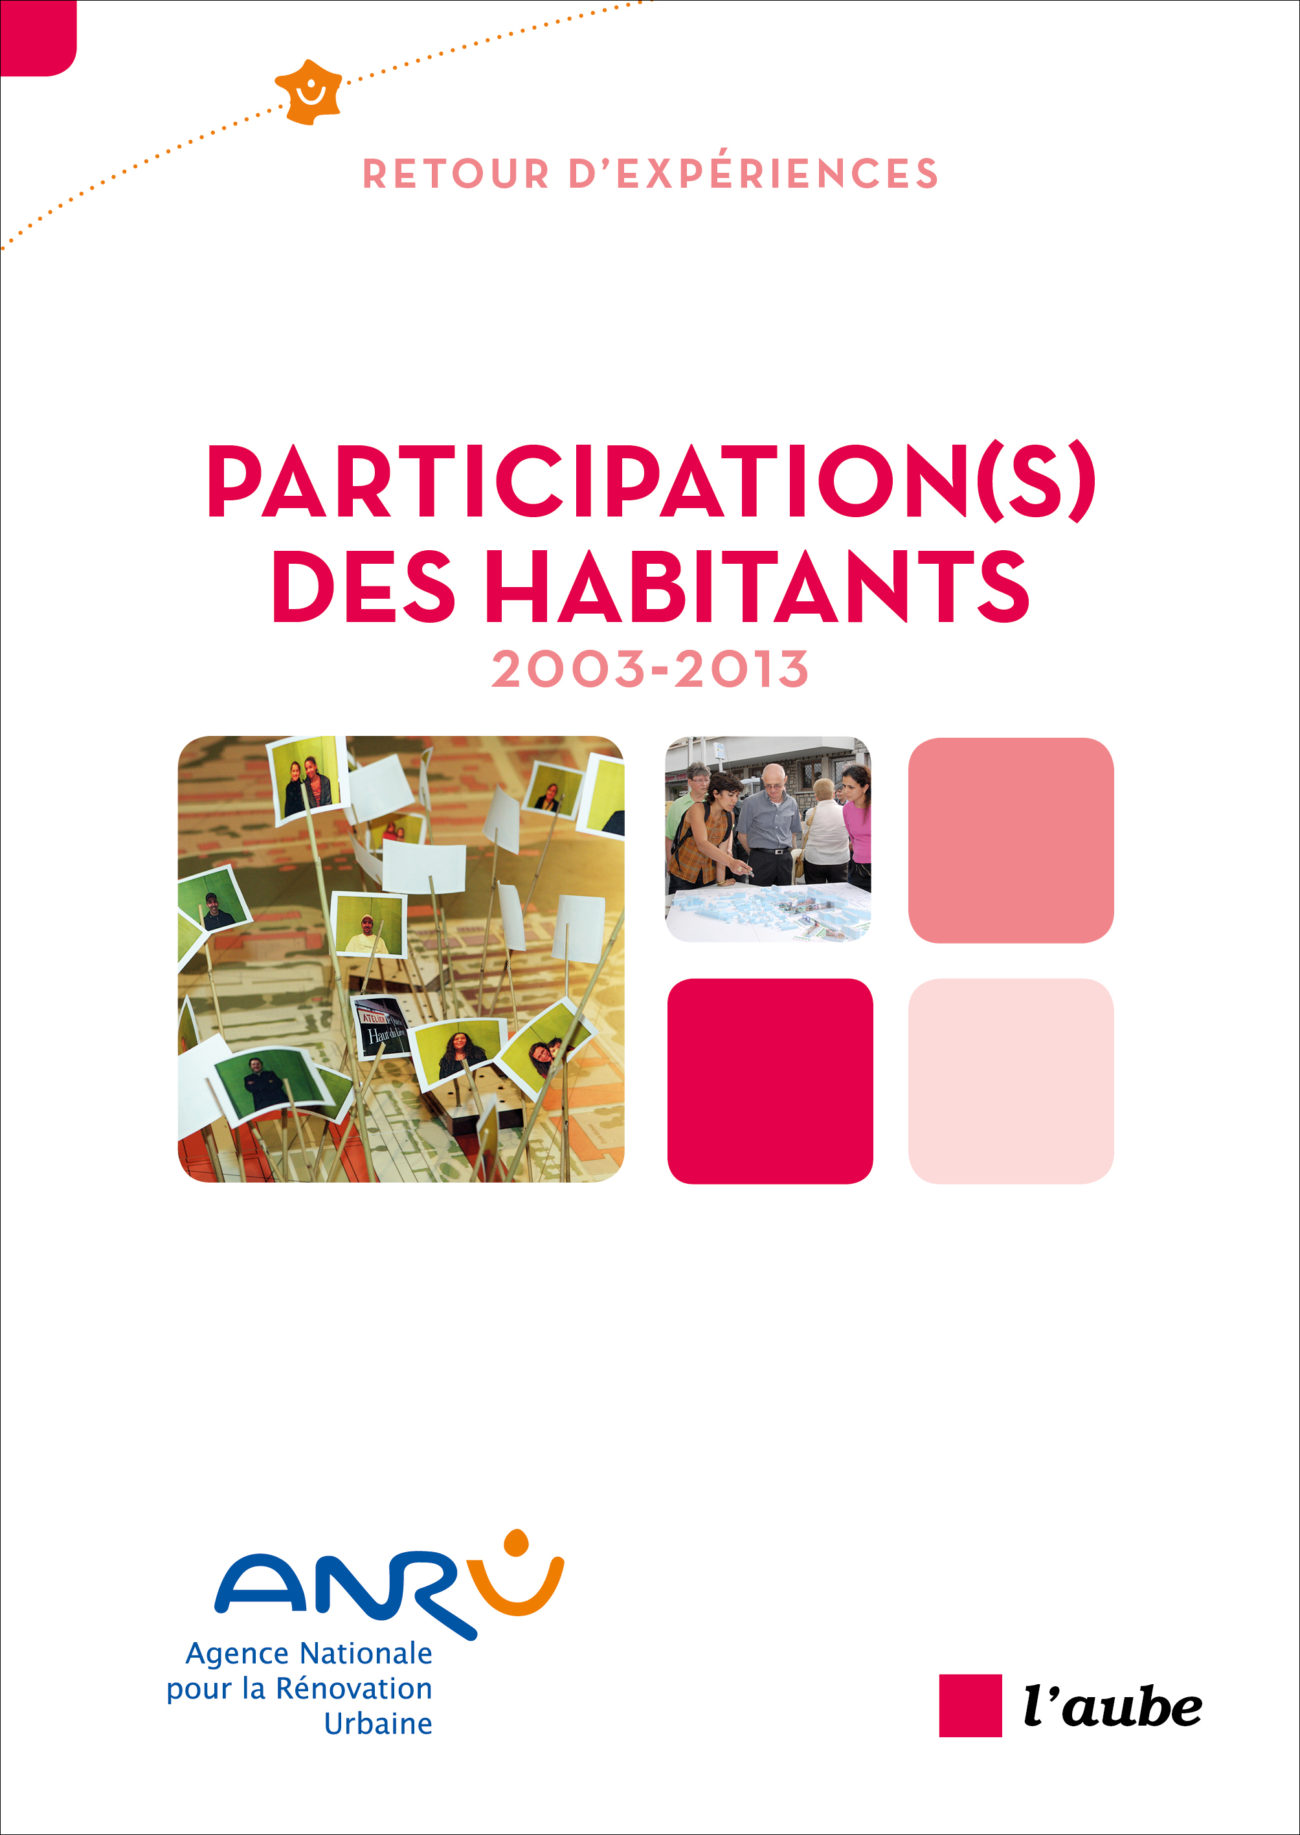 Participation(s) des habitants